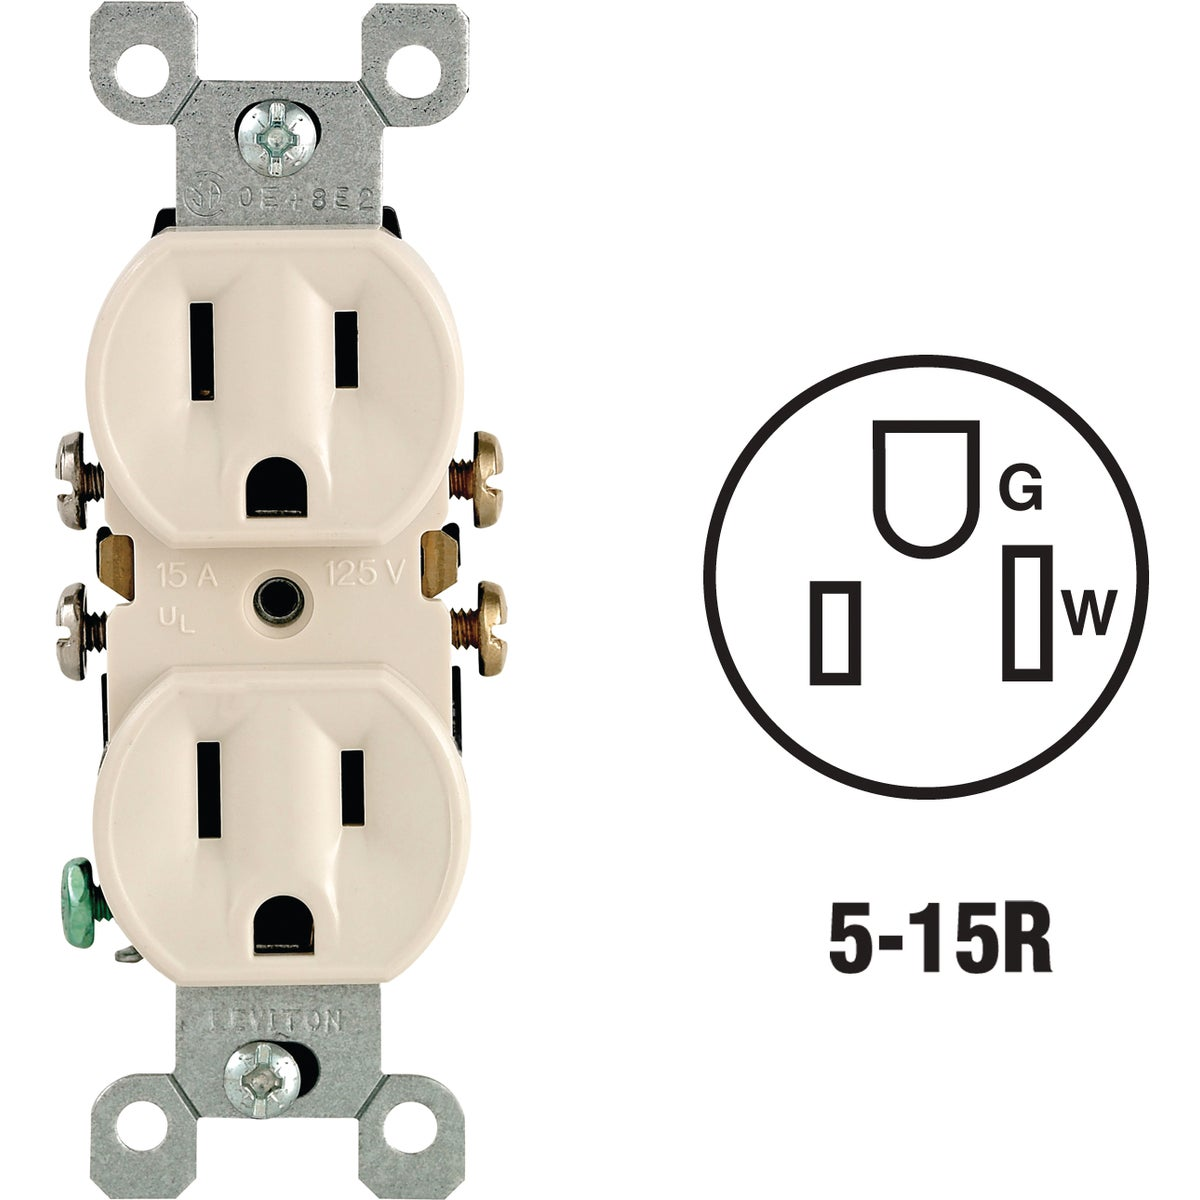 LT ALM DPLX OUTLET - 216-05320-TCP by Leviton Mfg Co